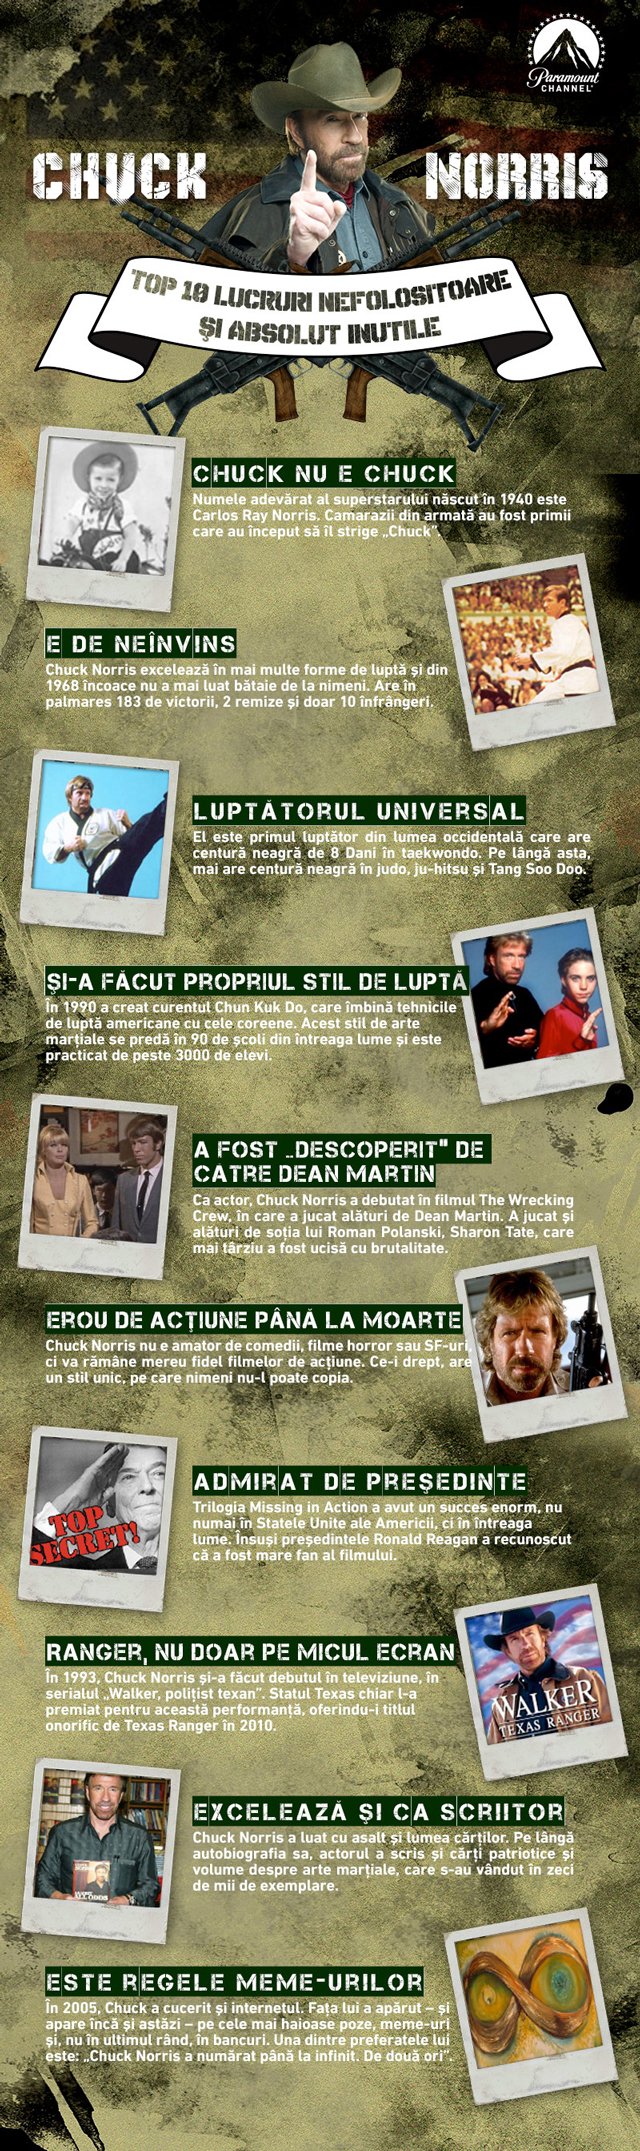 Chuck_Norris_Infographic